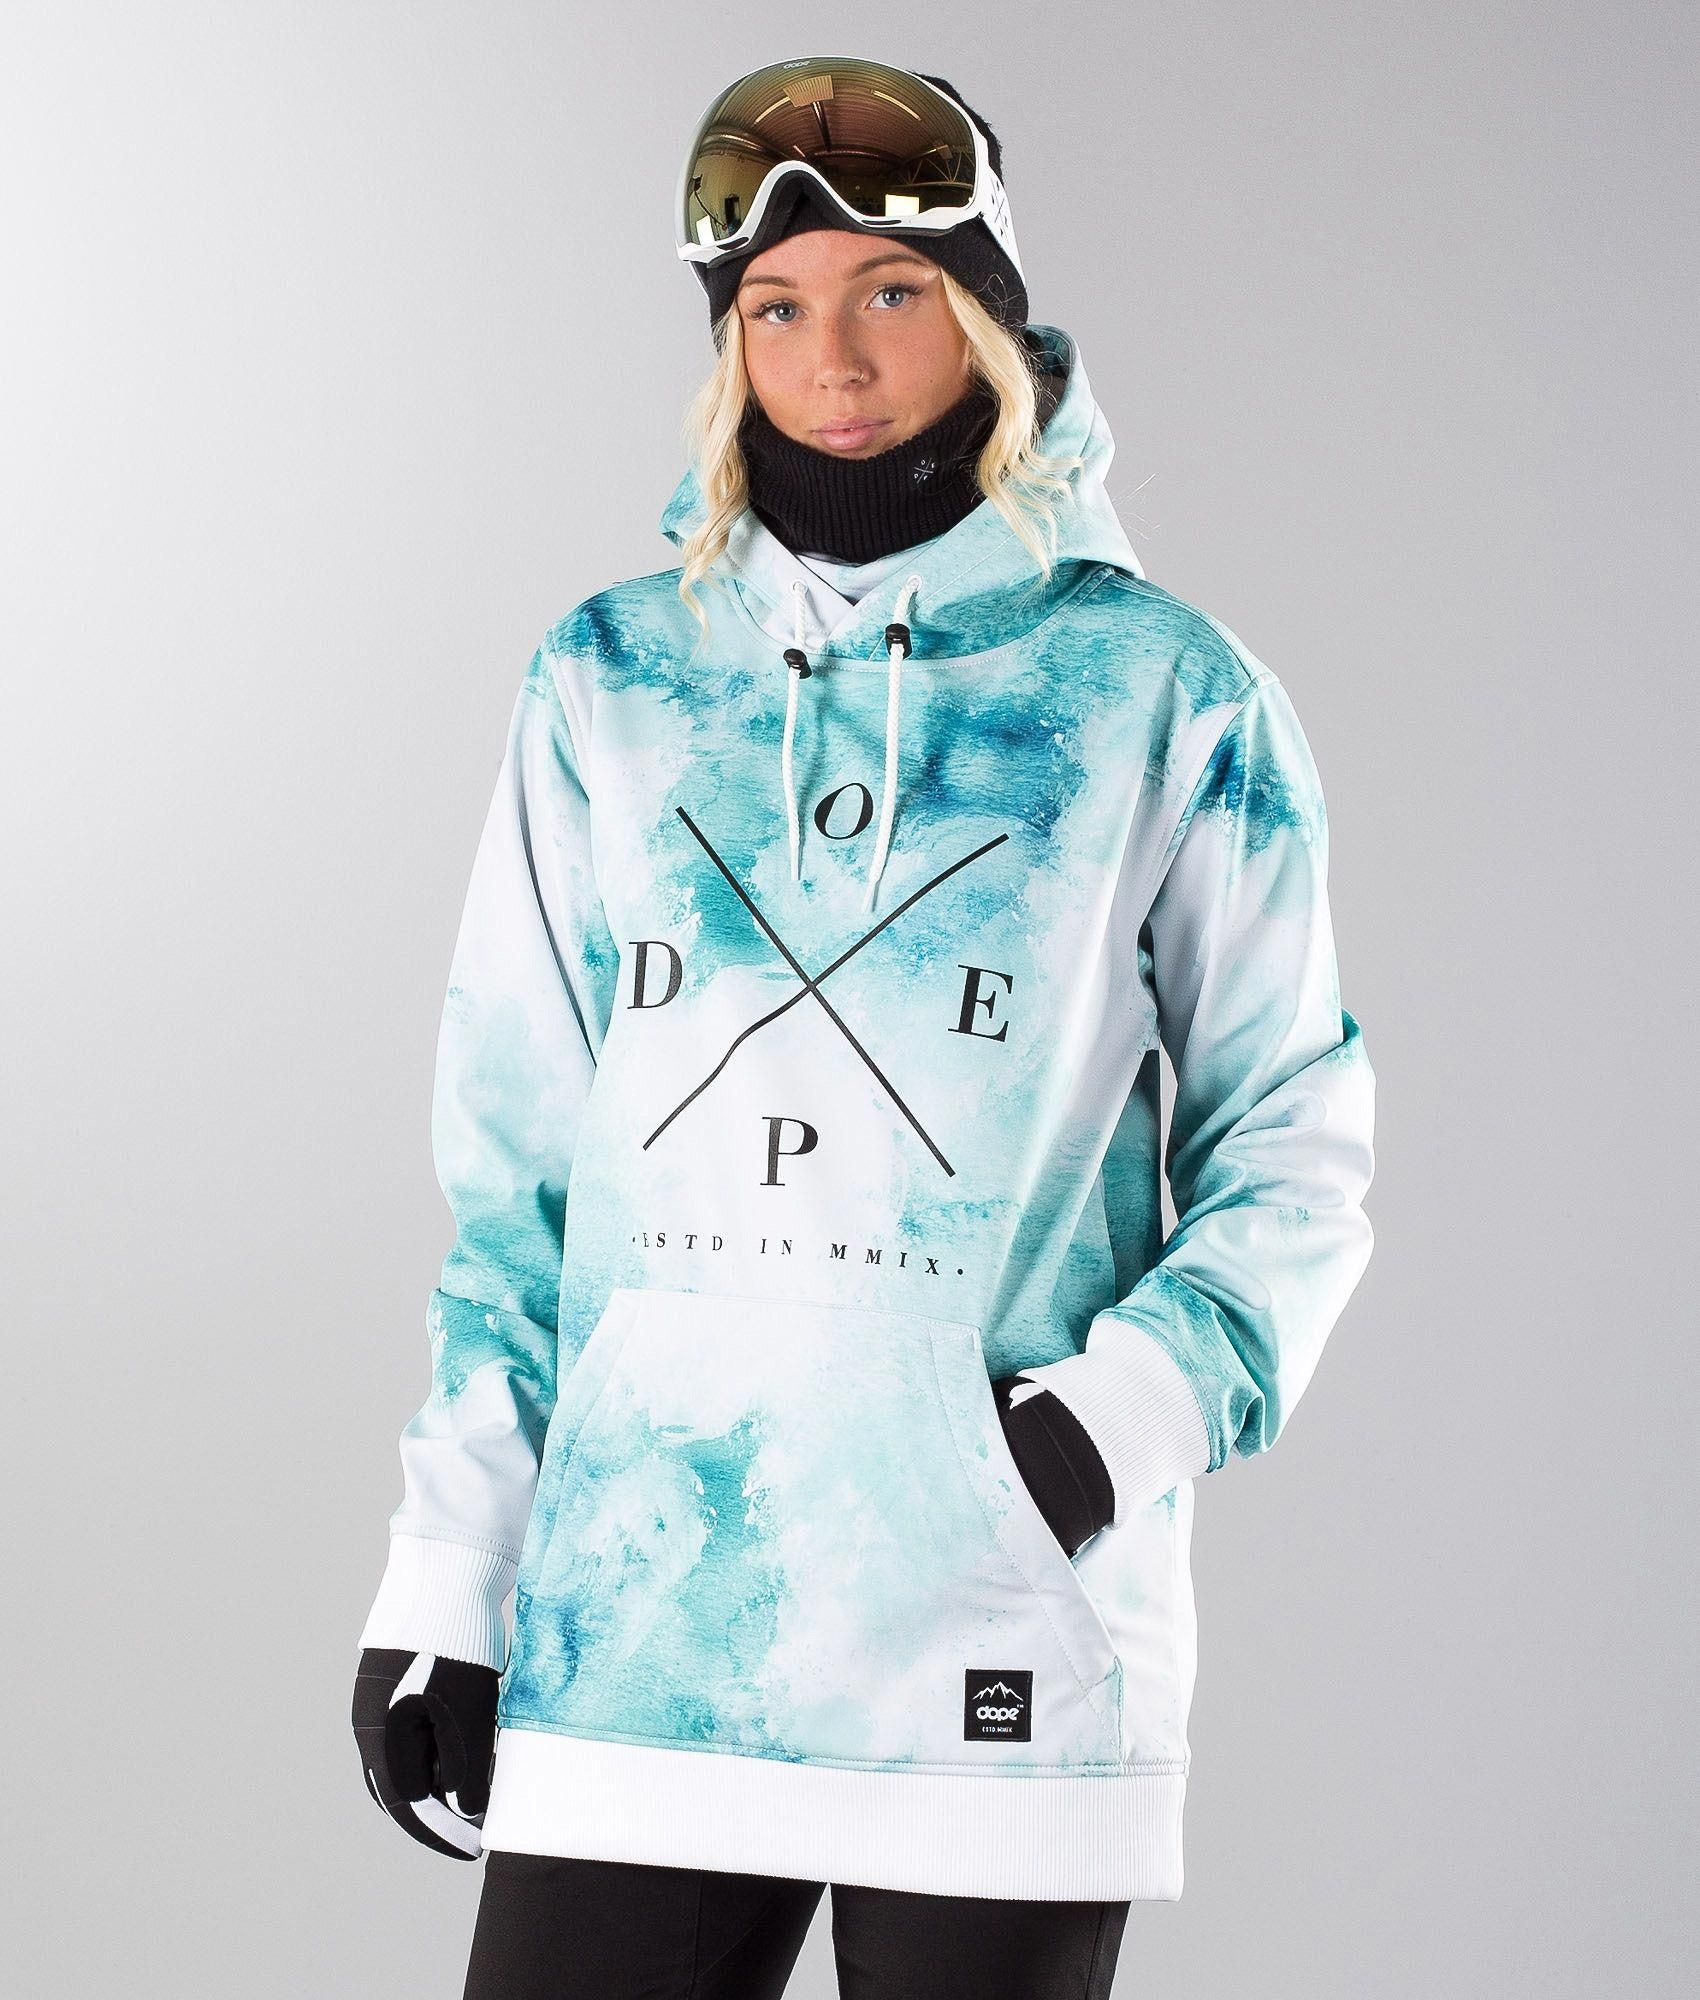 snowboarding ski outfits womens snowboard outfit